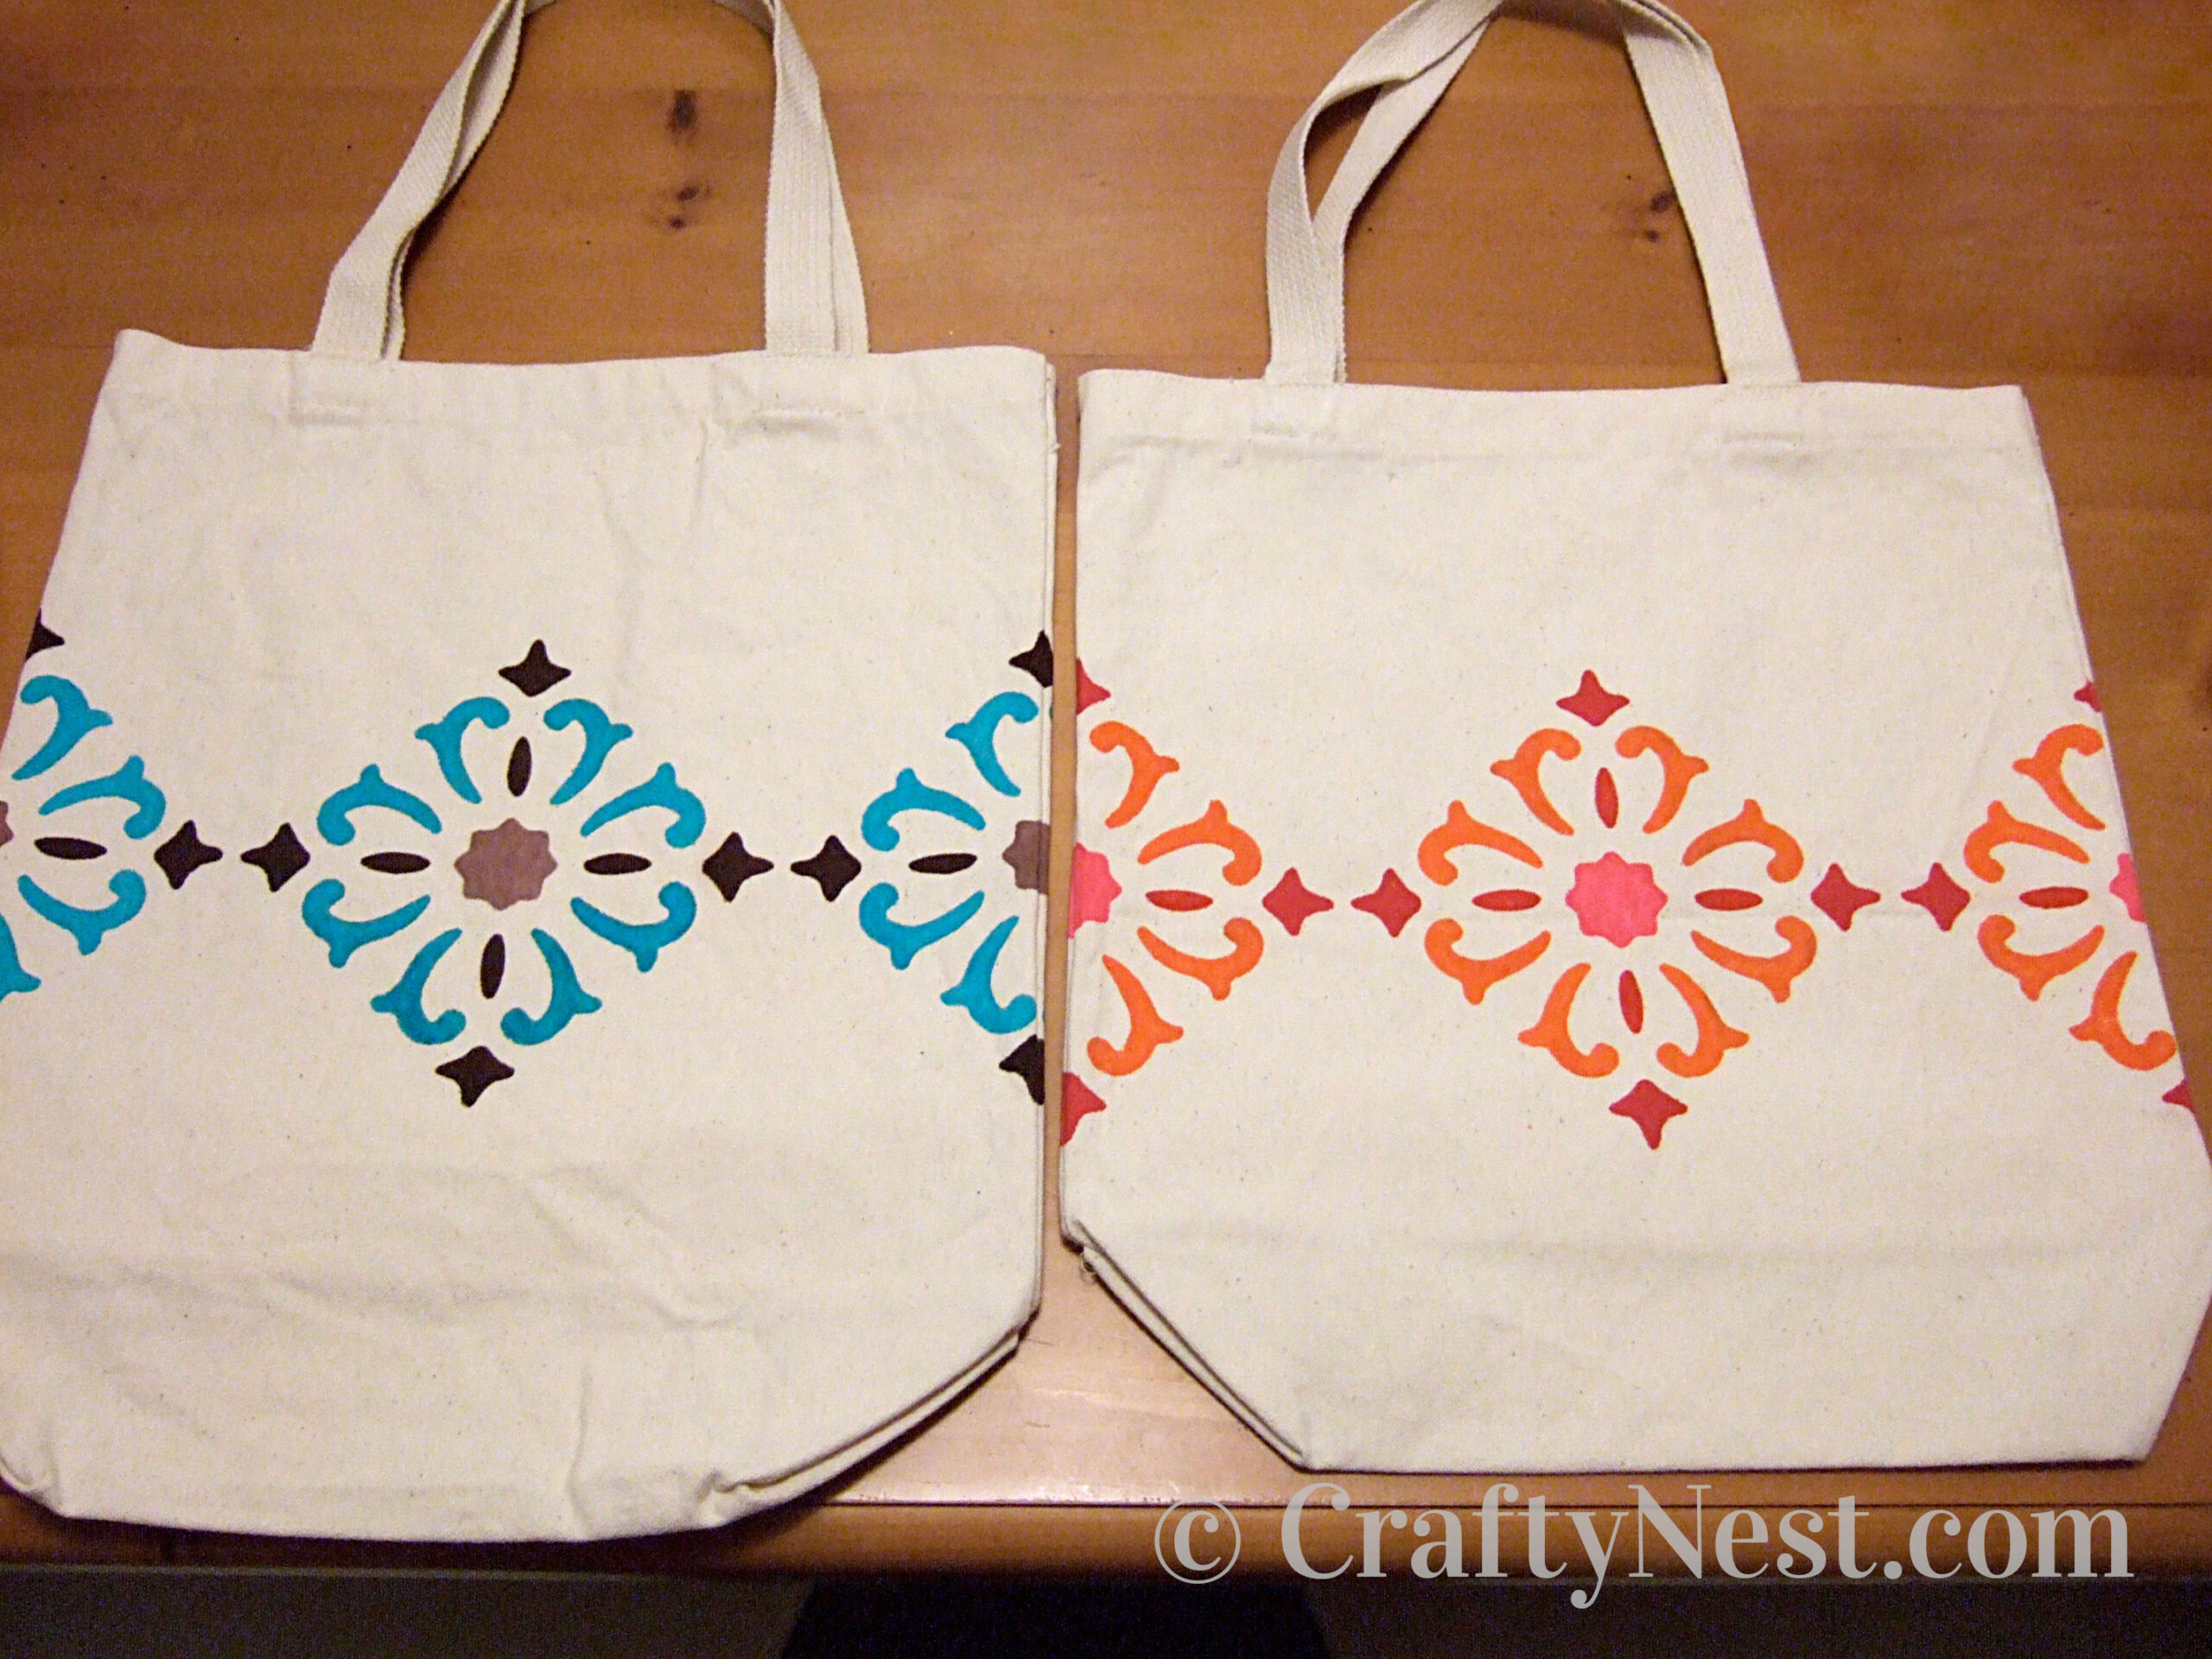 Canvas tote bags decorated with diamond-shape designs, photo